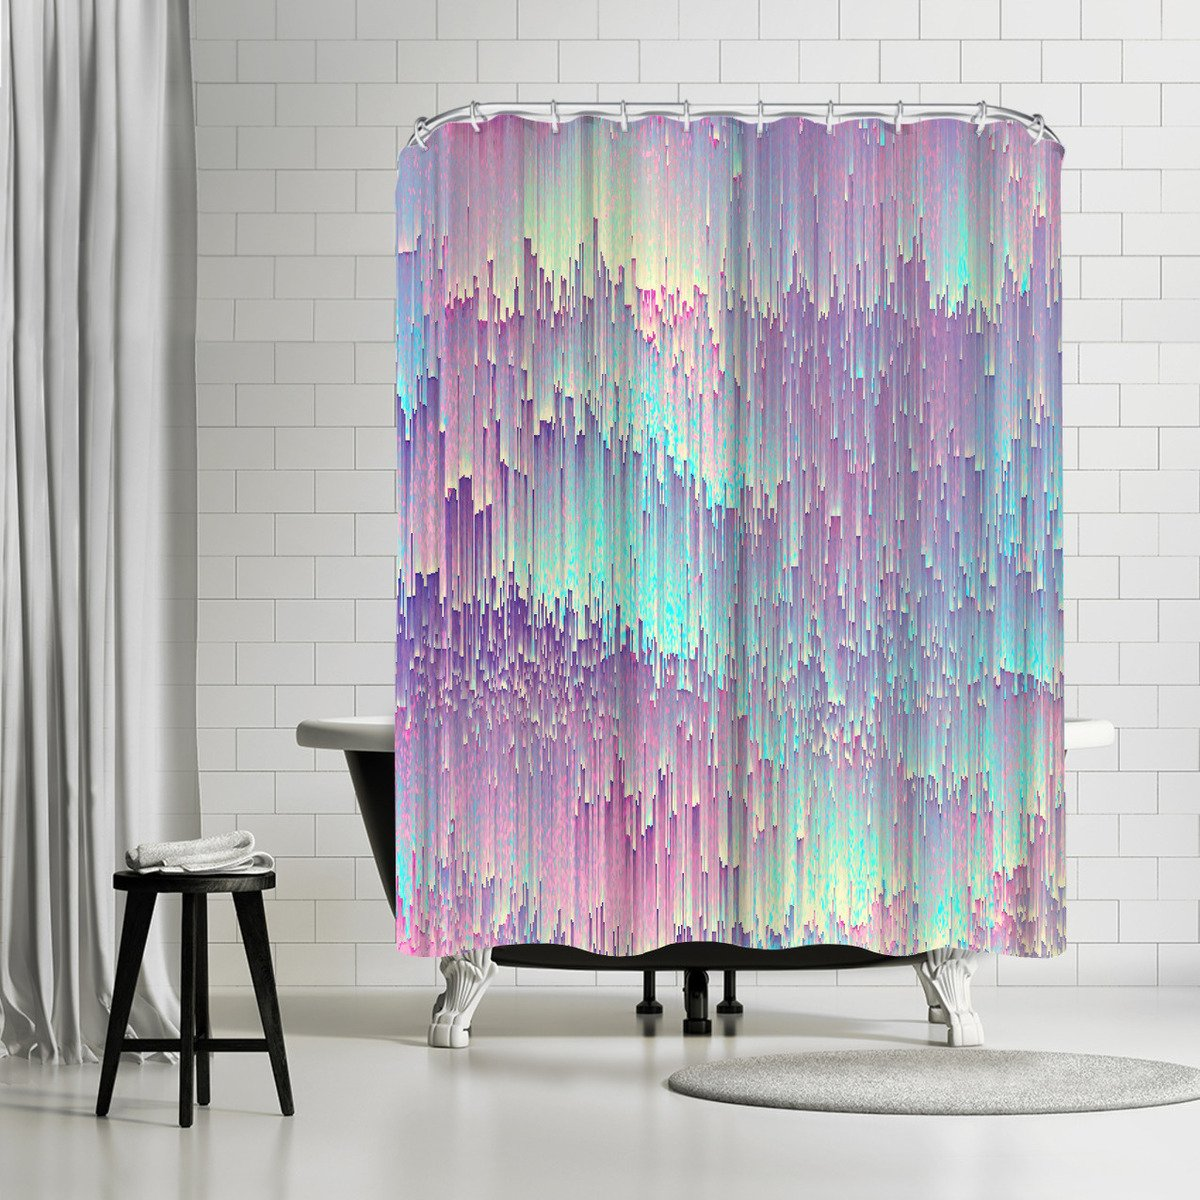 Iridescent Glitches By Emanuela Carratoni Shower Curtain Vinyl